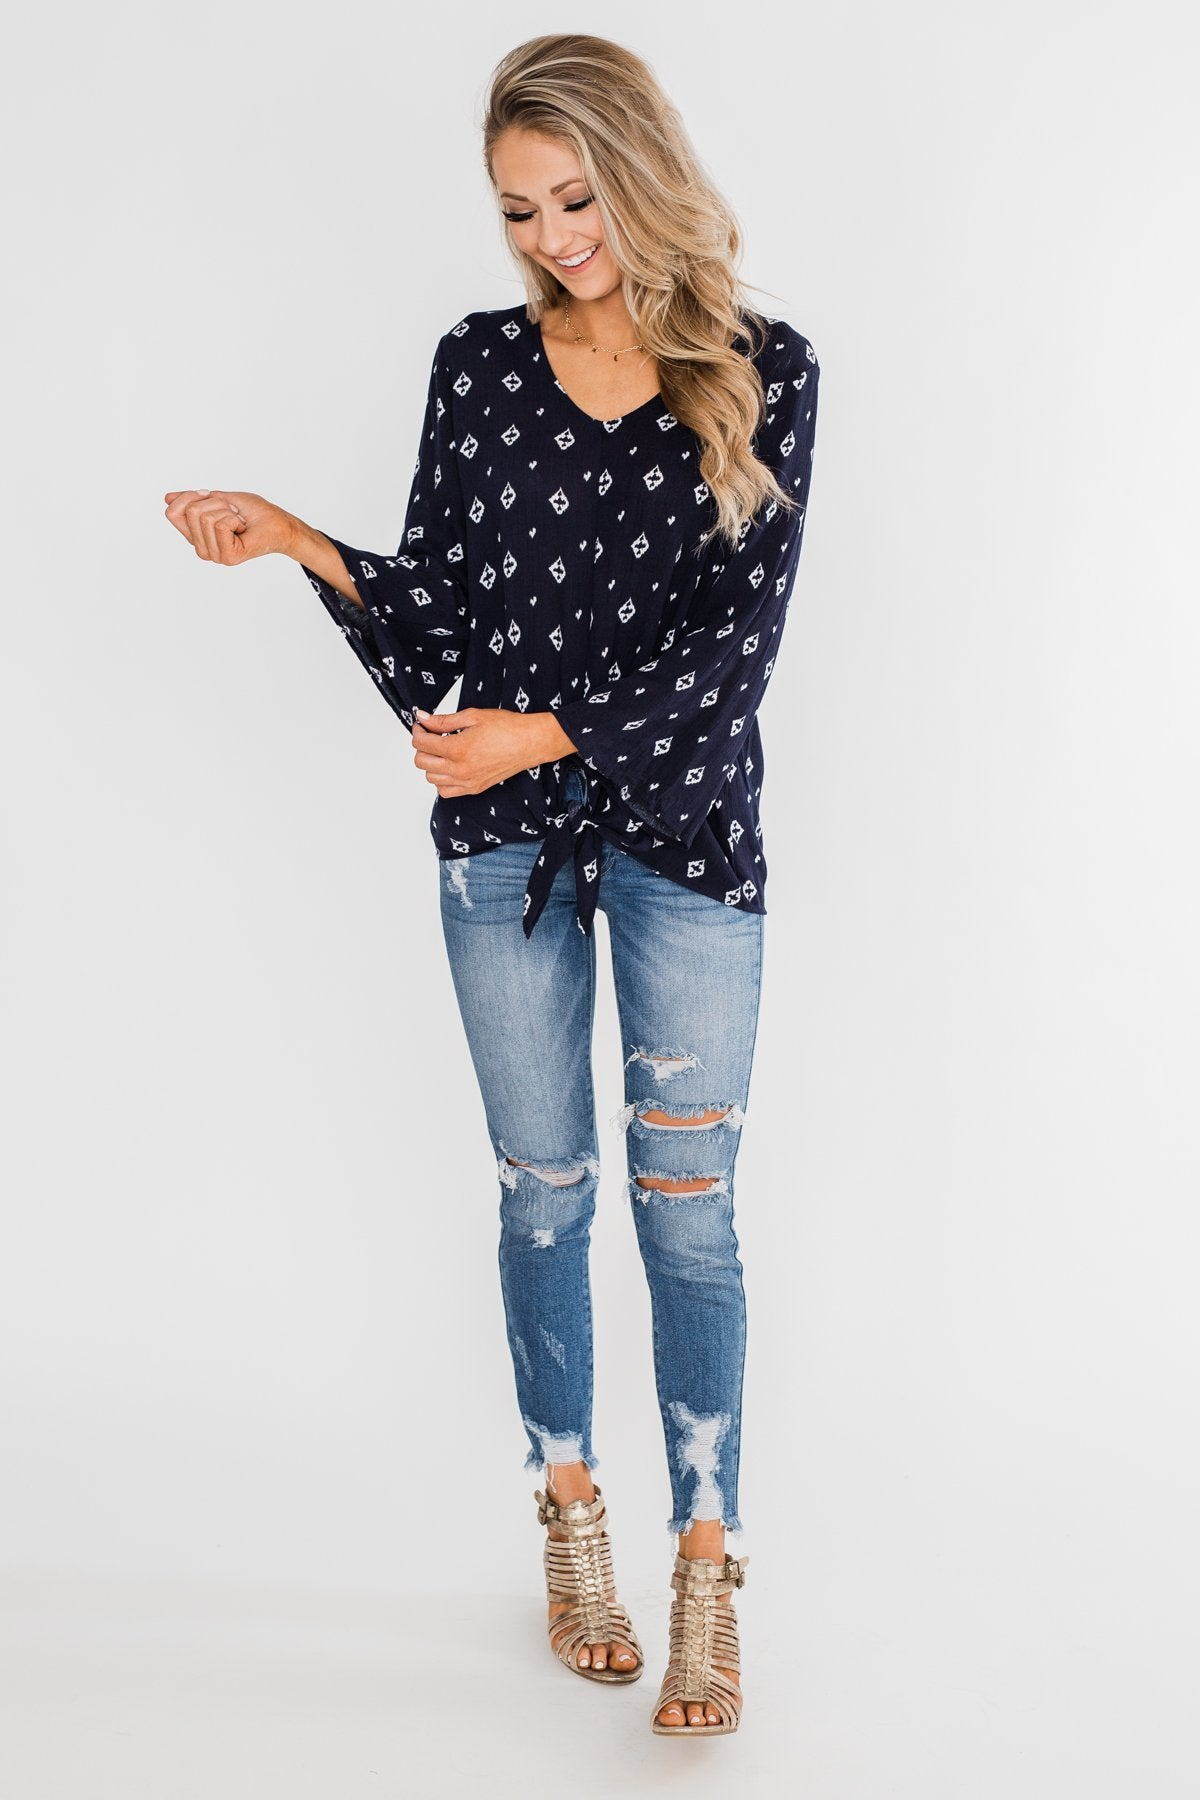 Something About You Printed Tie Blouse- Navy